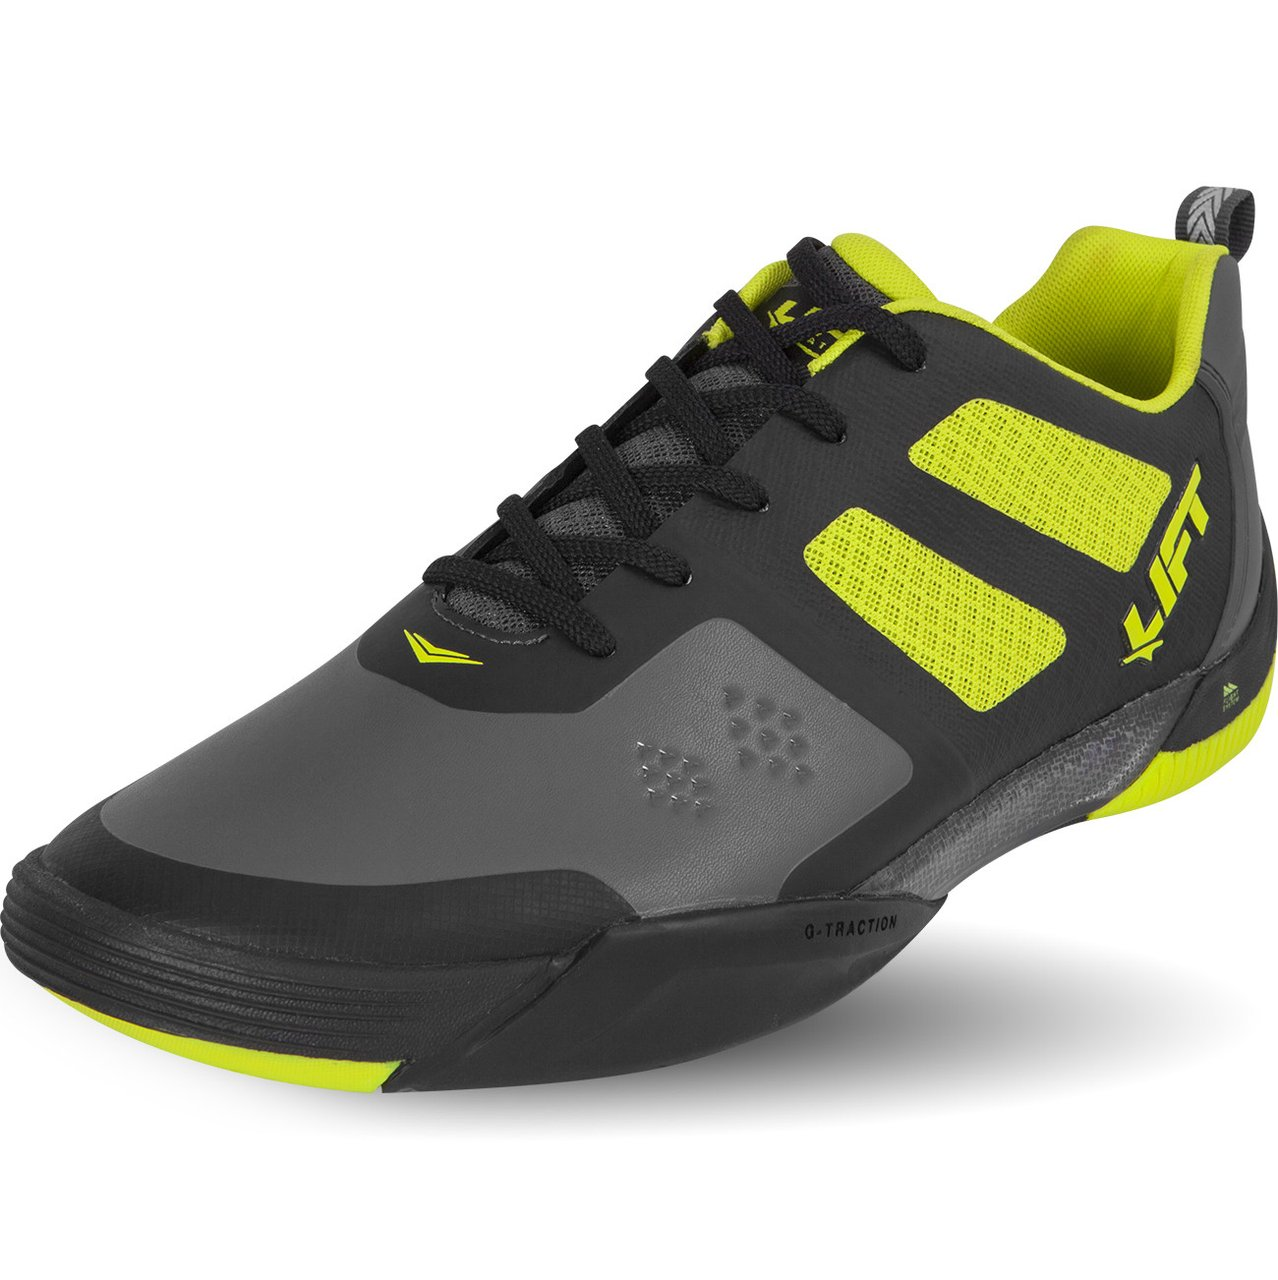 Aviation shoes TALON -Black & HiViz